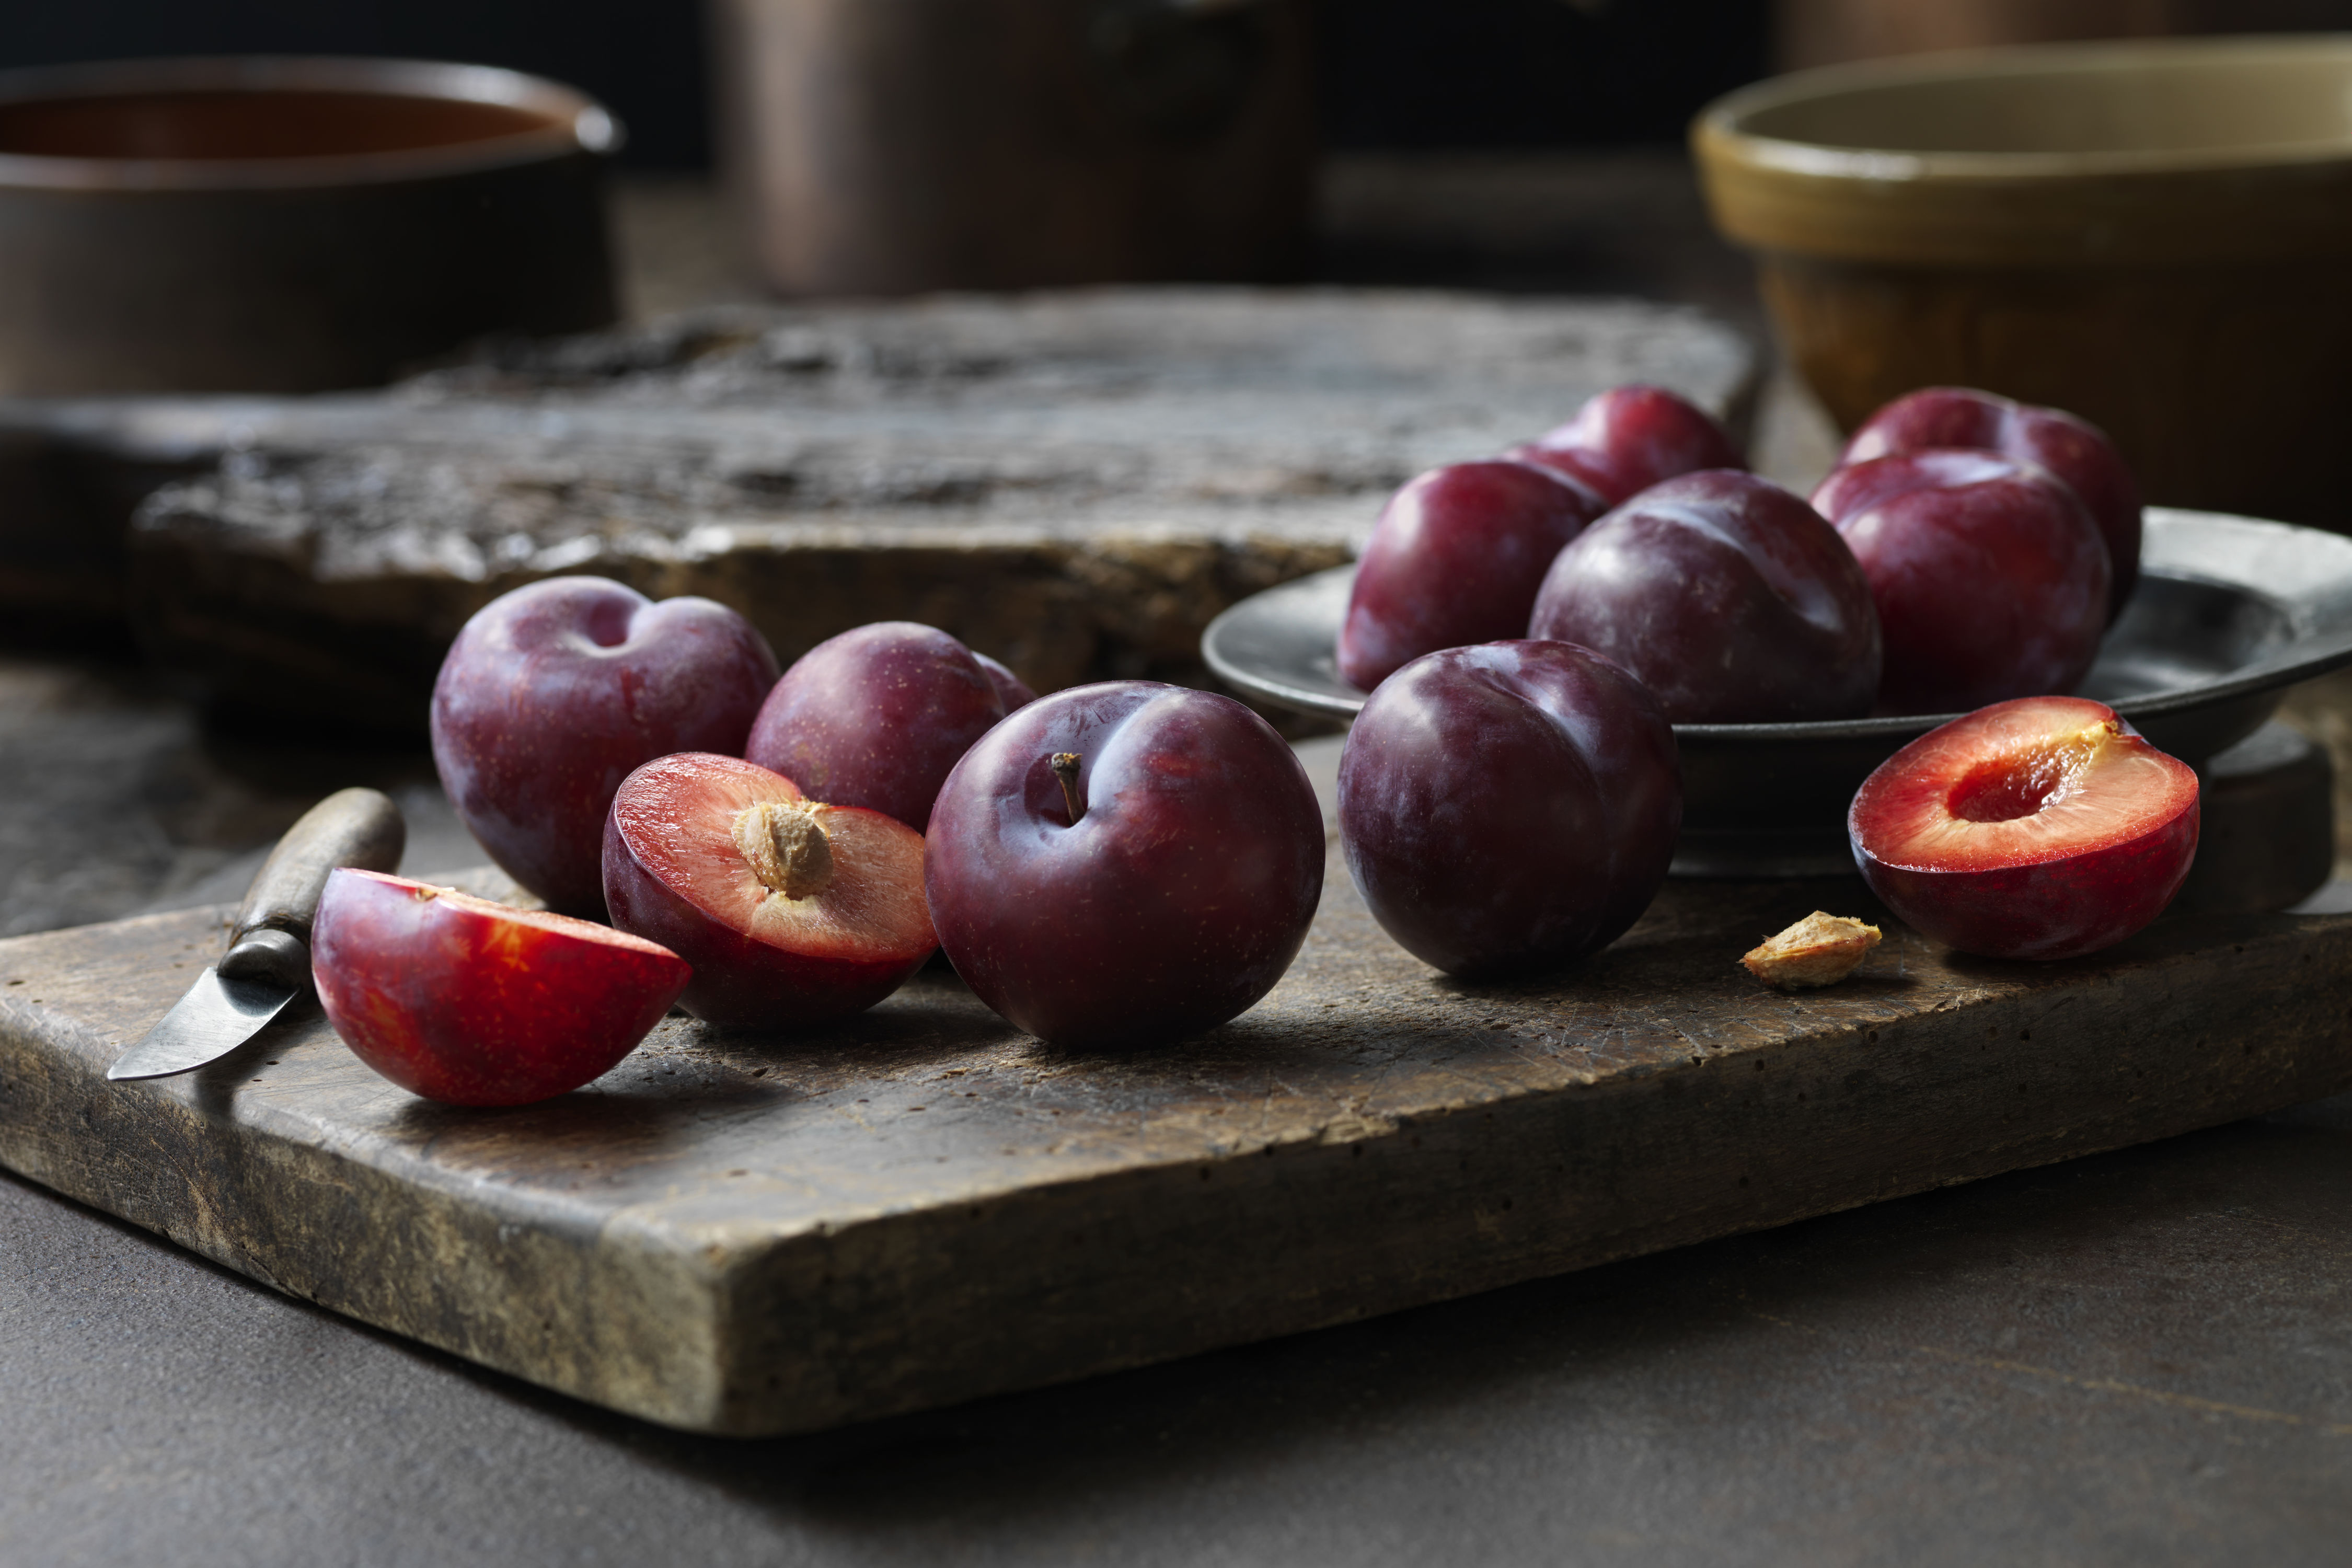 How To Peel Plums